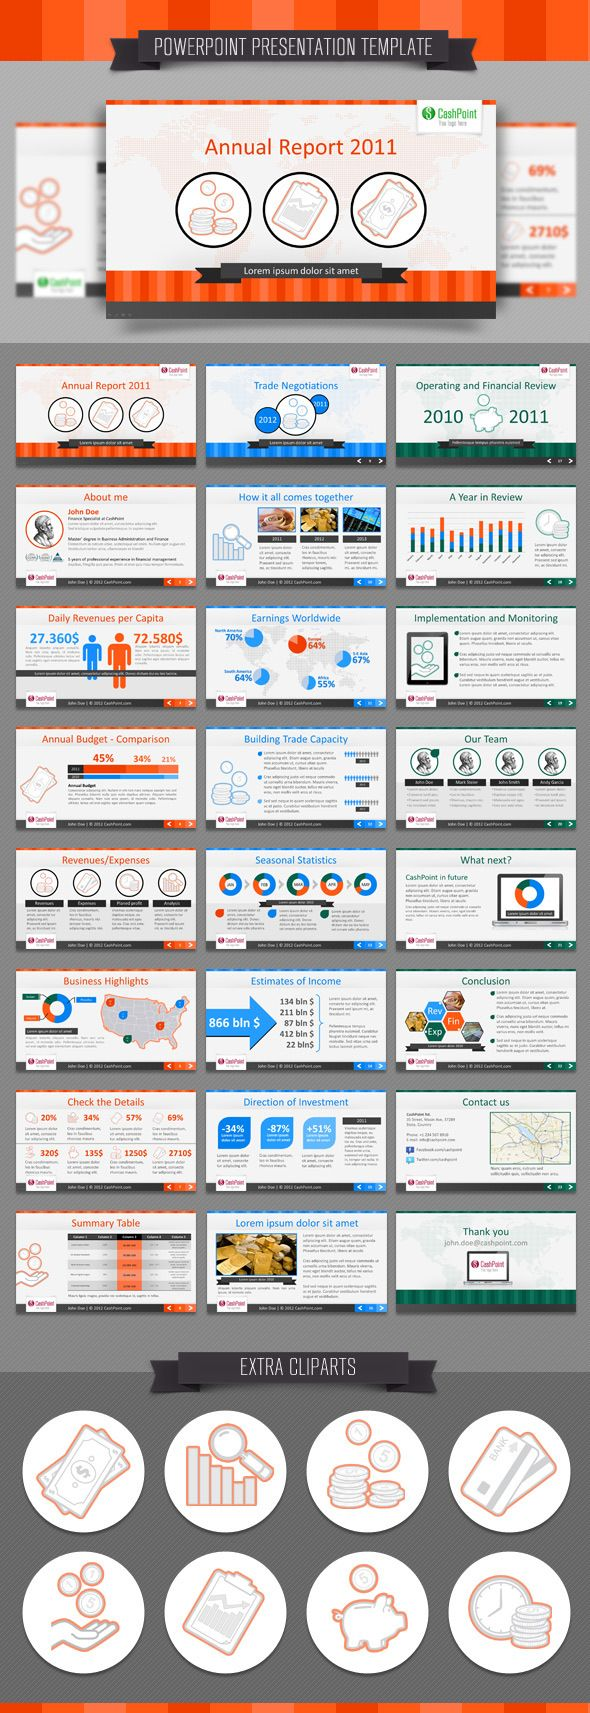 Financial Report FullHD PowerPoint Template on Behance